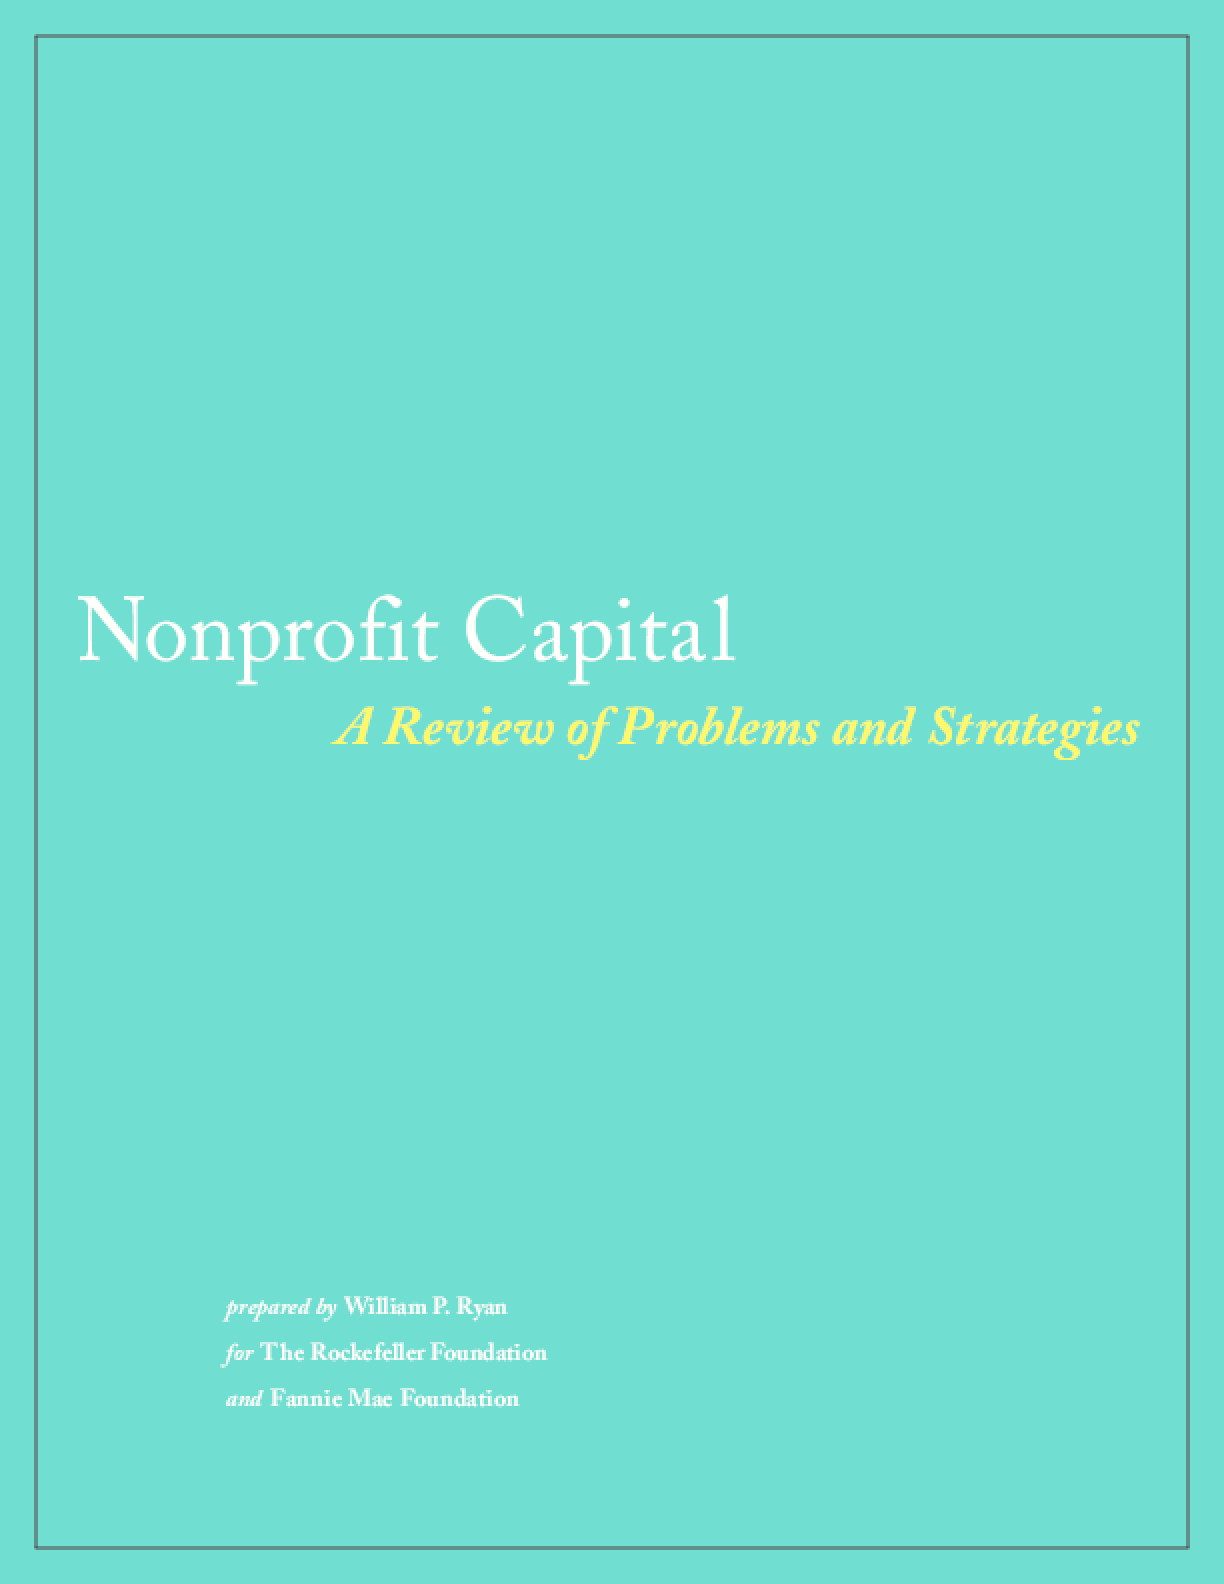 Nonprofit Capital: A Review of Problems and Strategies